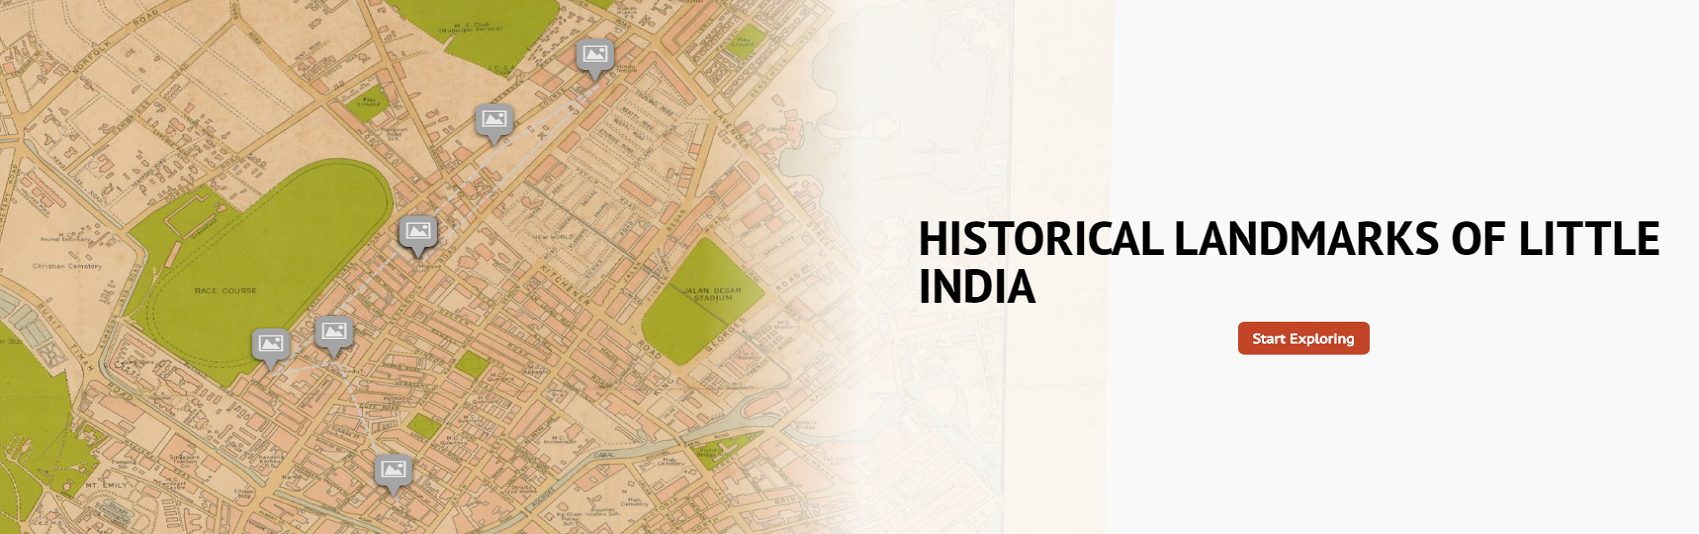 storymap-little-india-landmarks